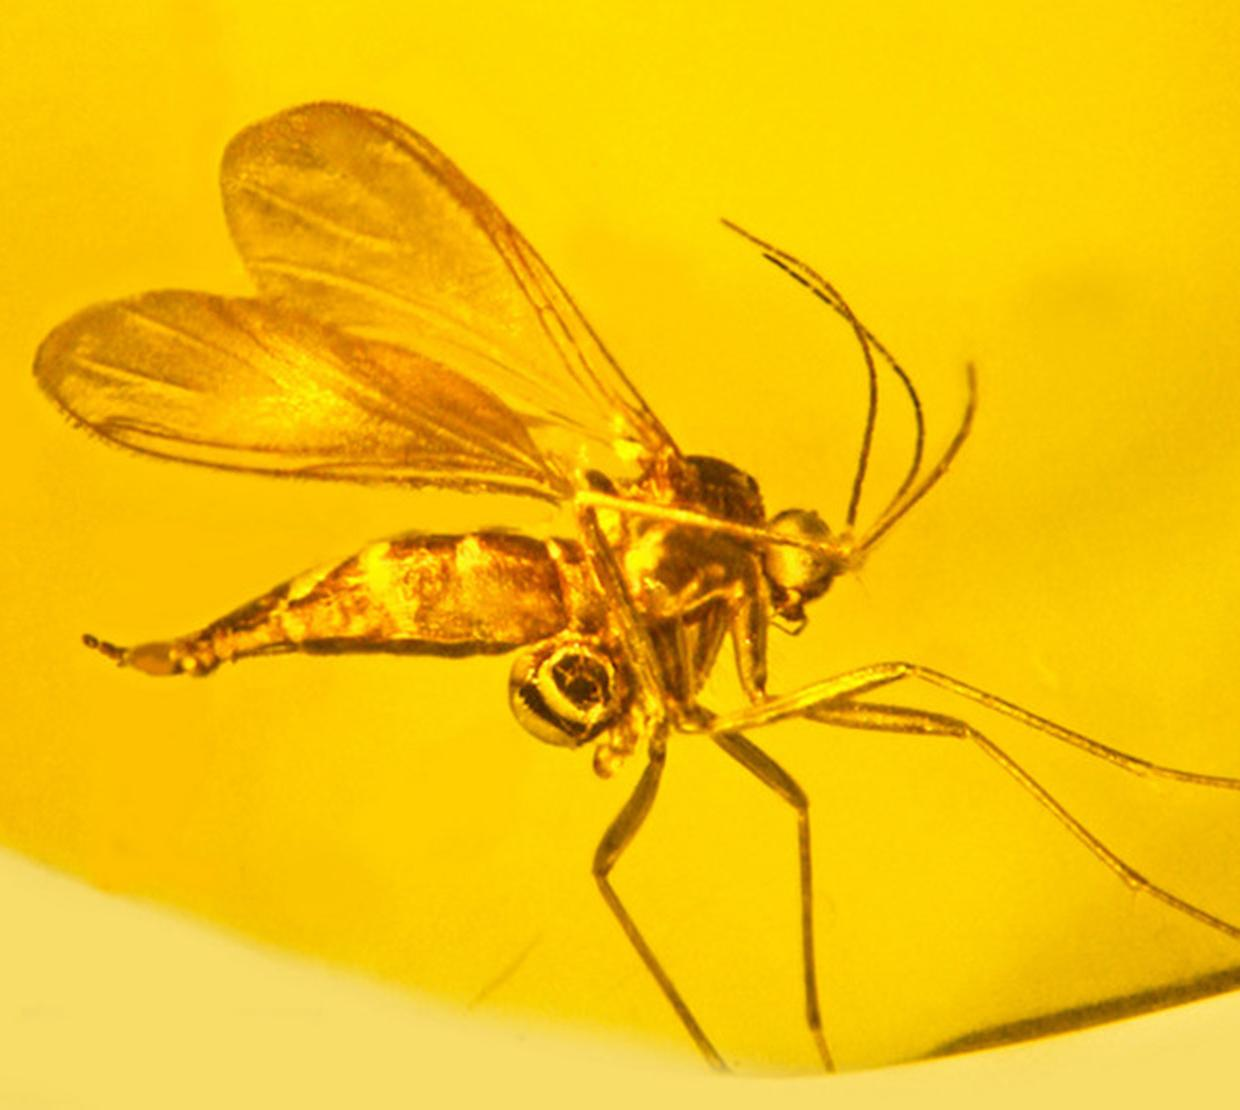 Mosquito fossil in yellow amber